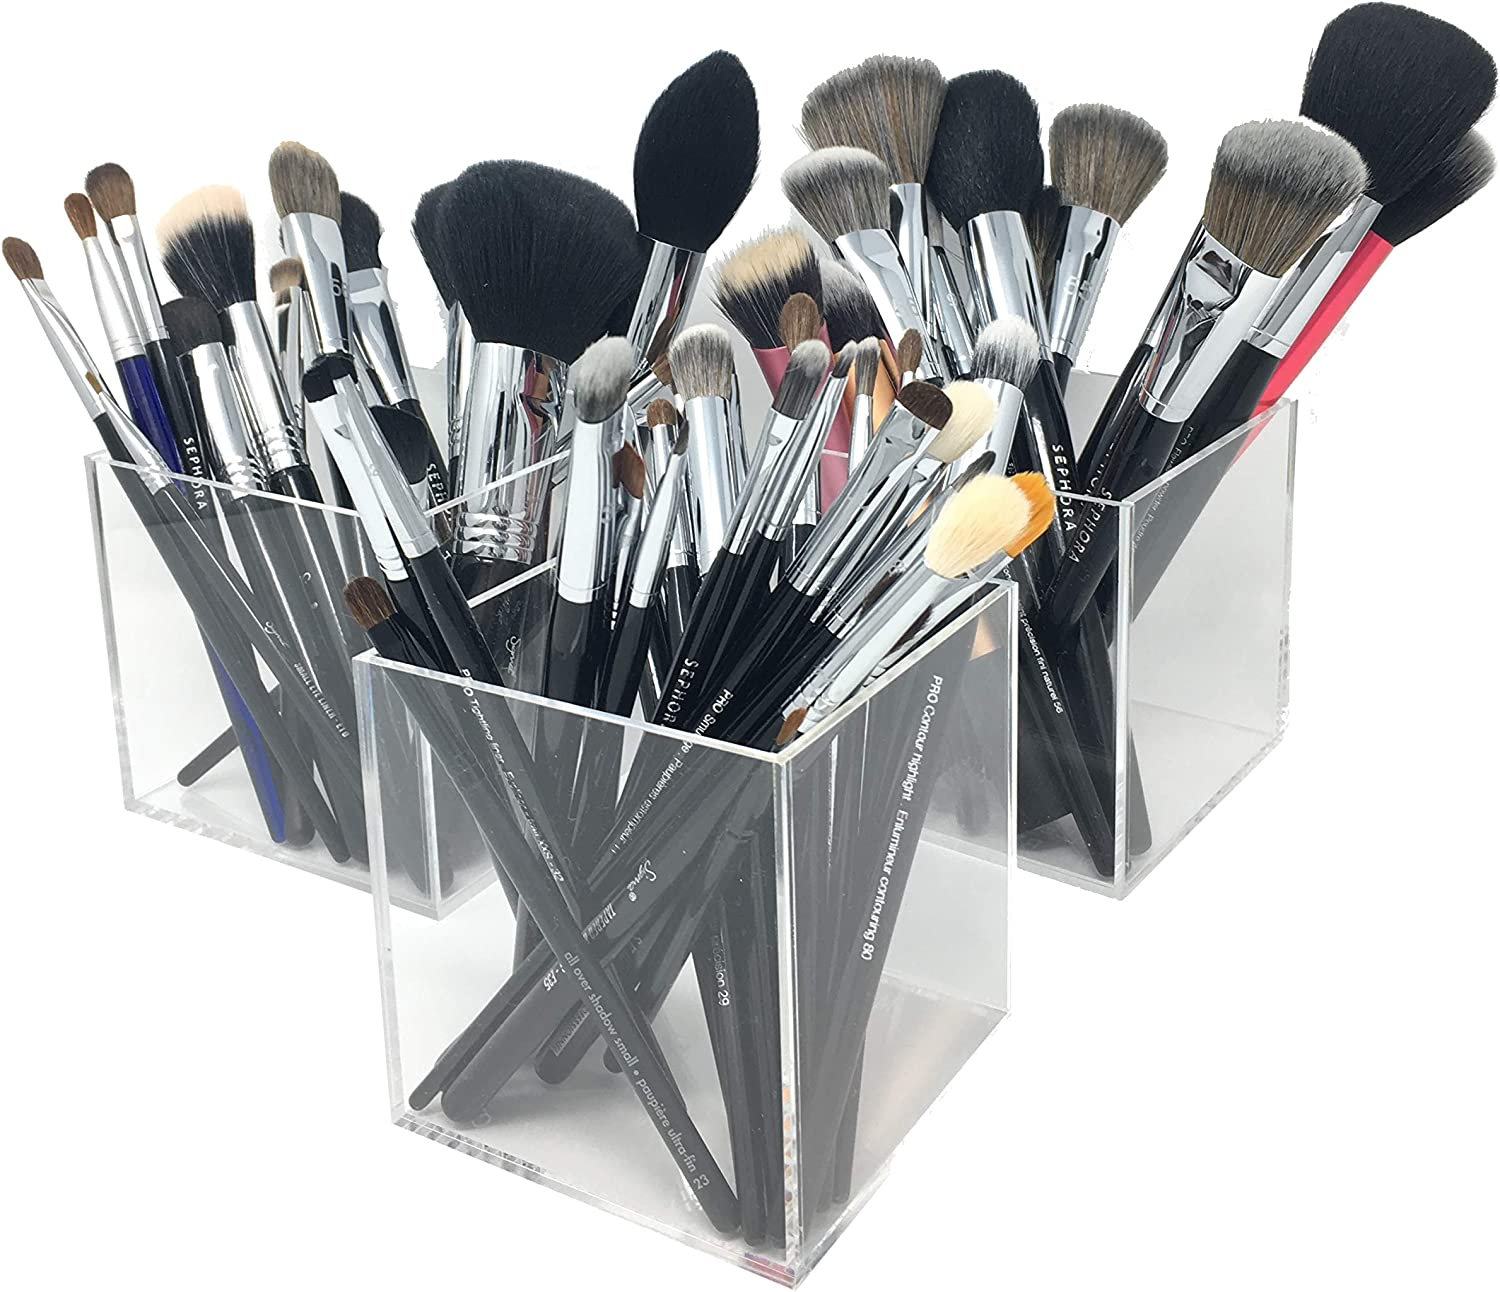 byAlegory Storage Cubes for Organizing Vanity Makeup Brushes and Cosmetic Beauty Items: Amazon.es: Belleza